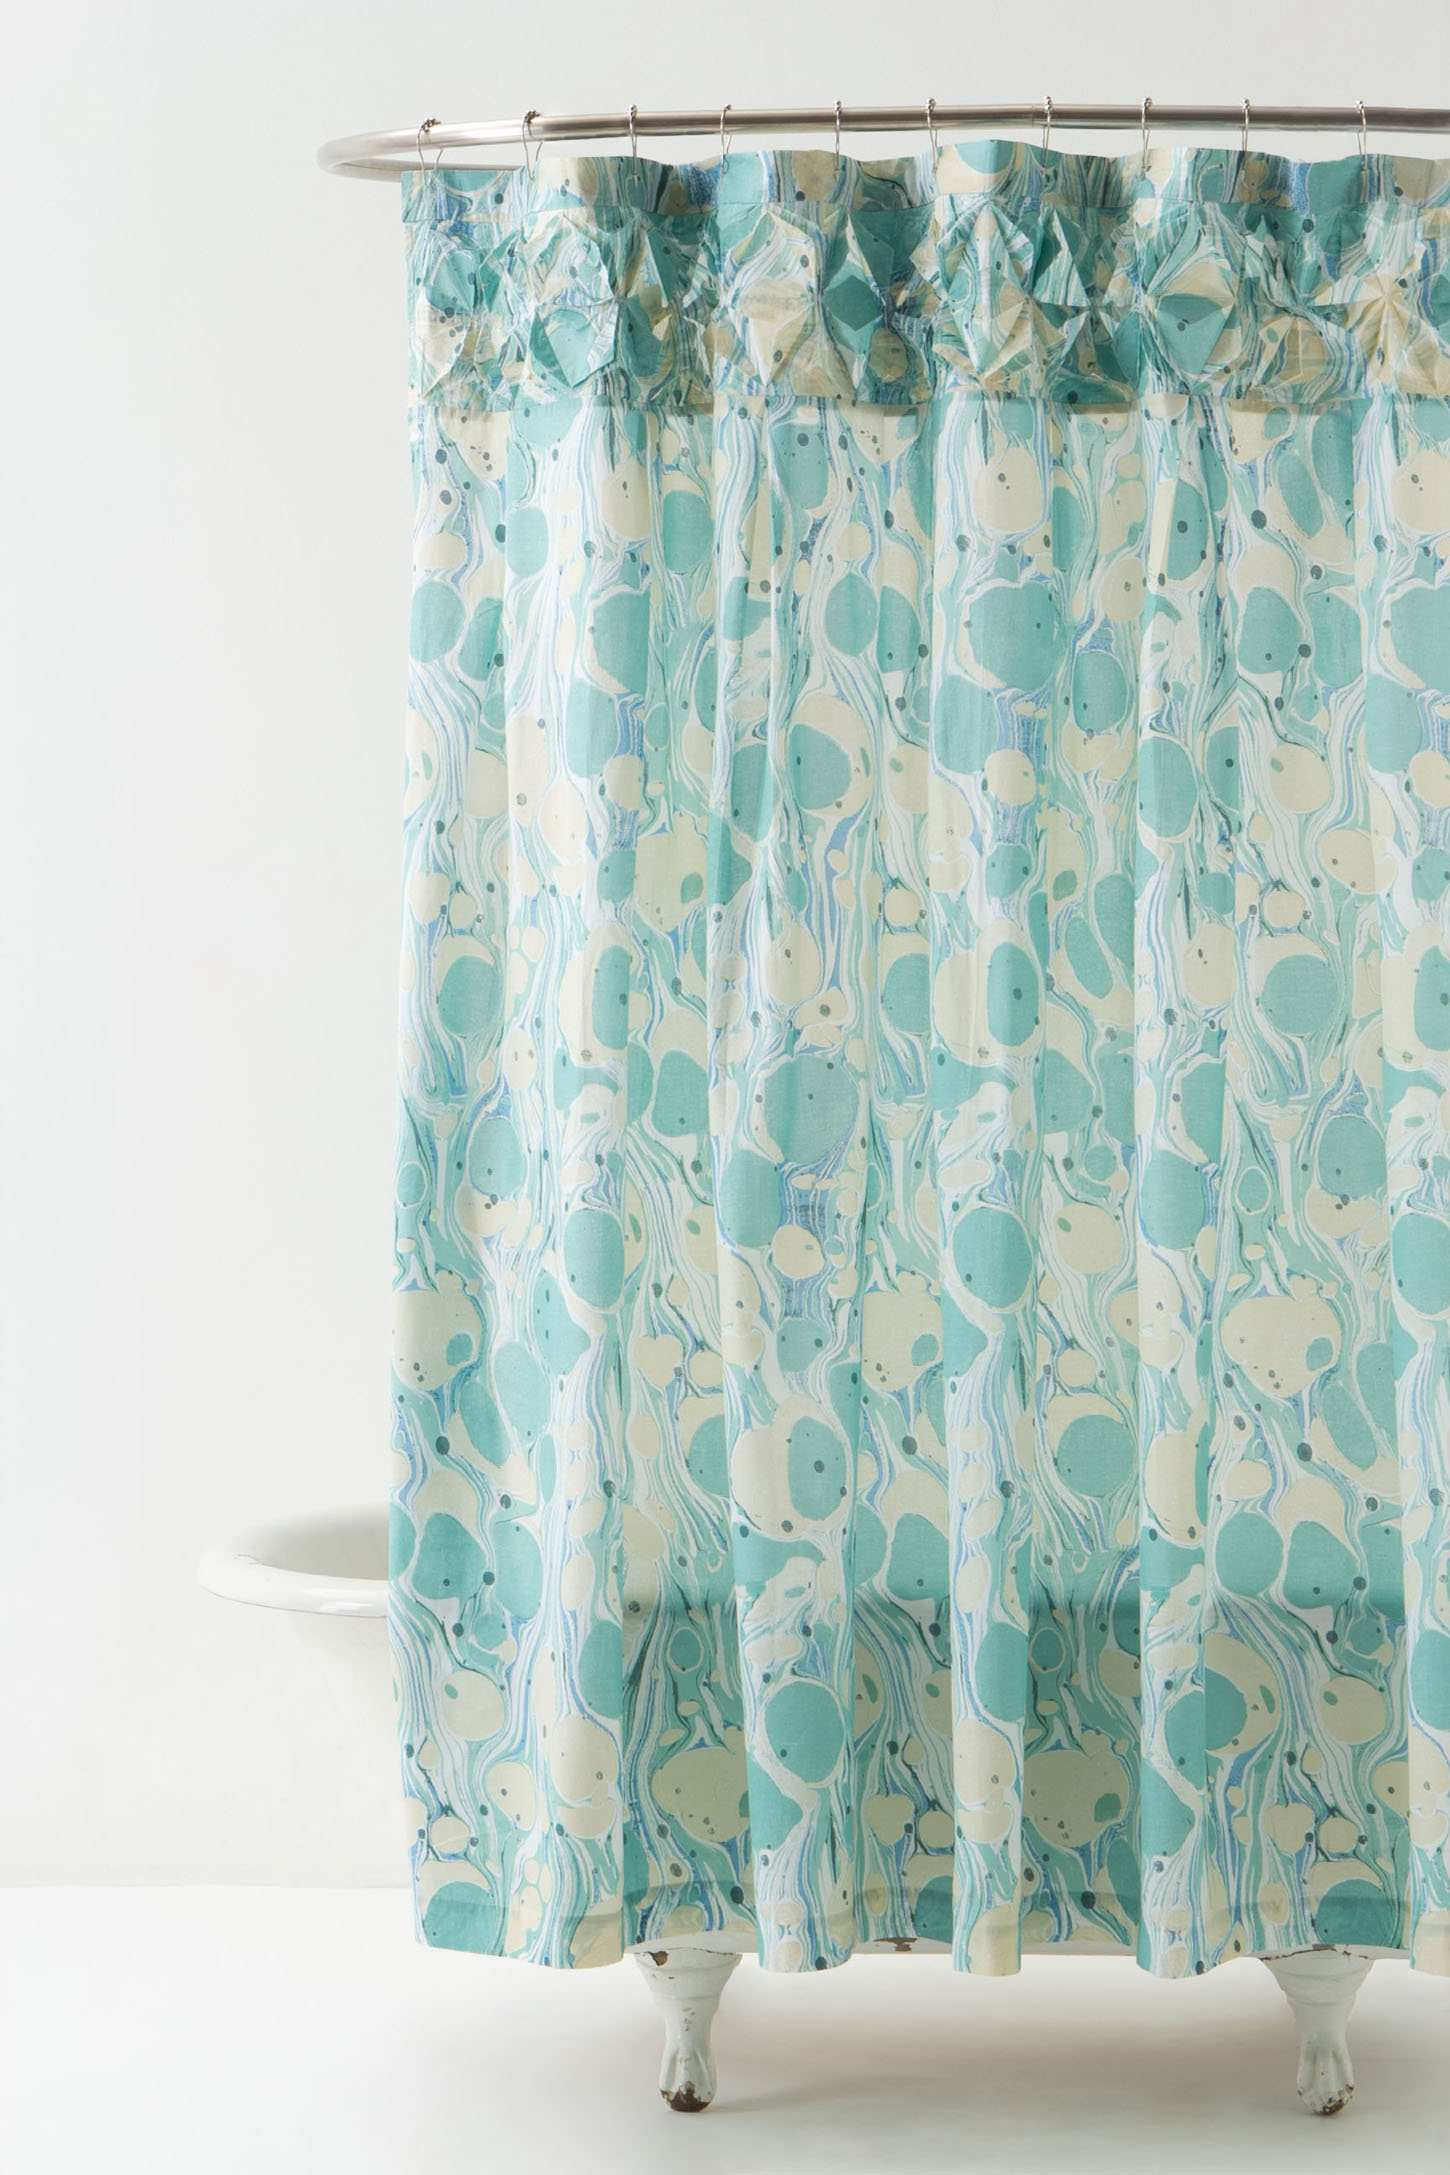 bournemouth turquoise shower curtain